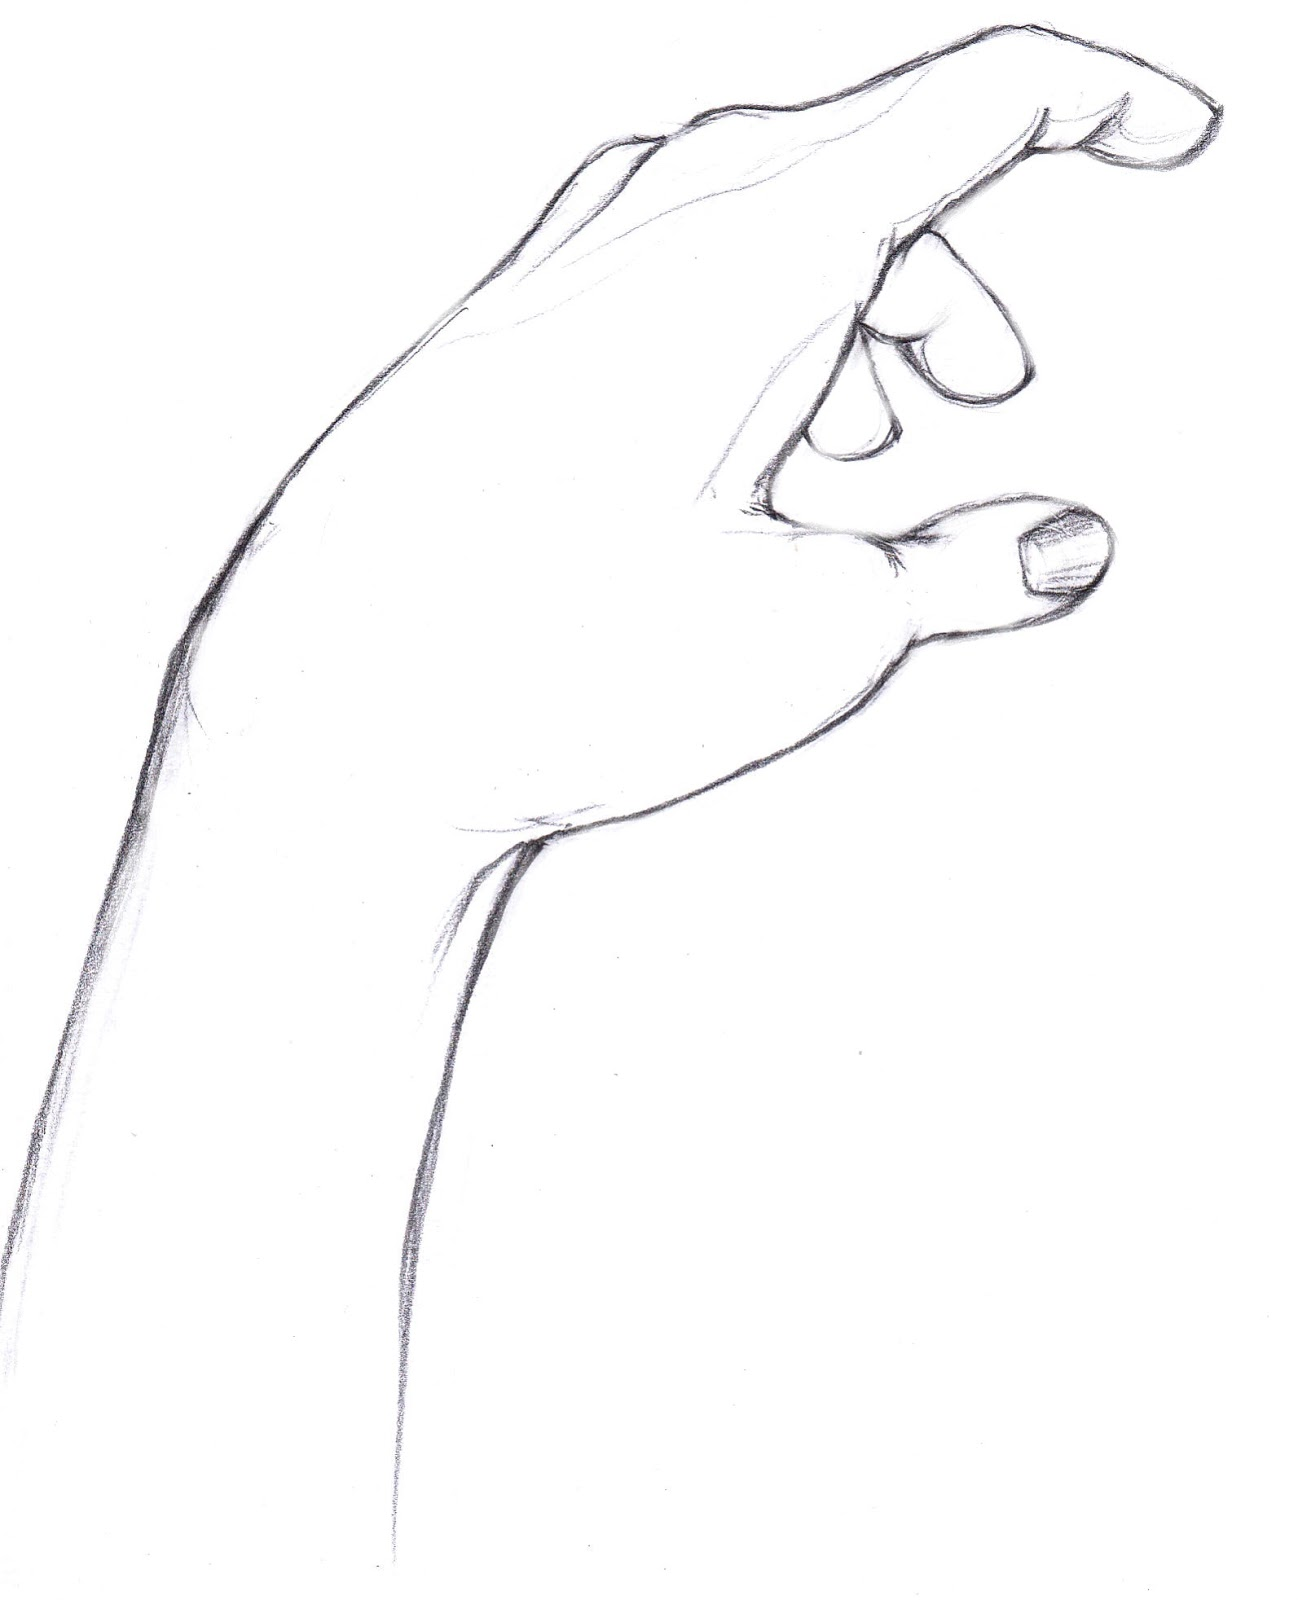 D Line Drawing Of Hand : Hand line art cliparts